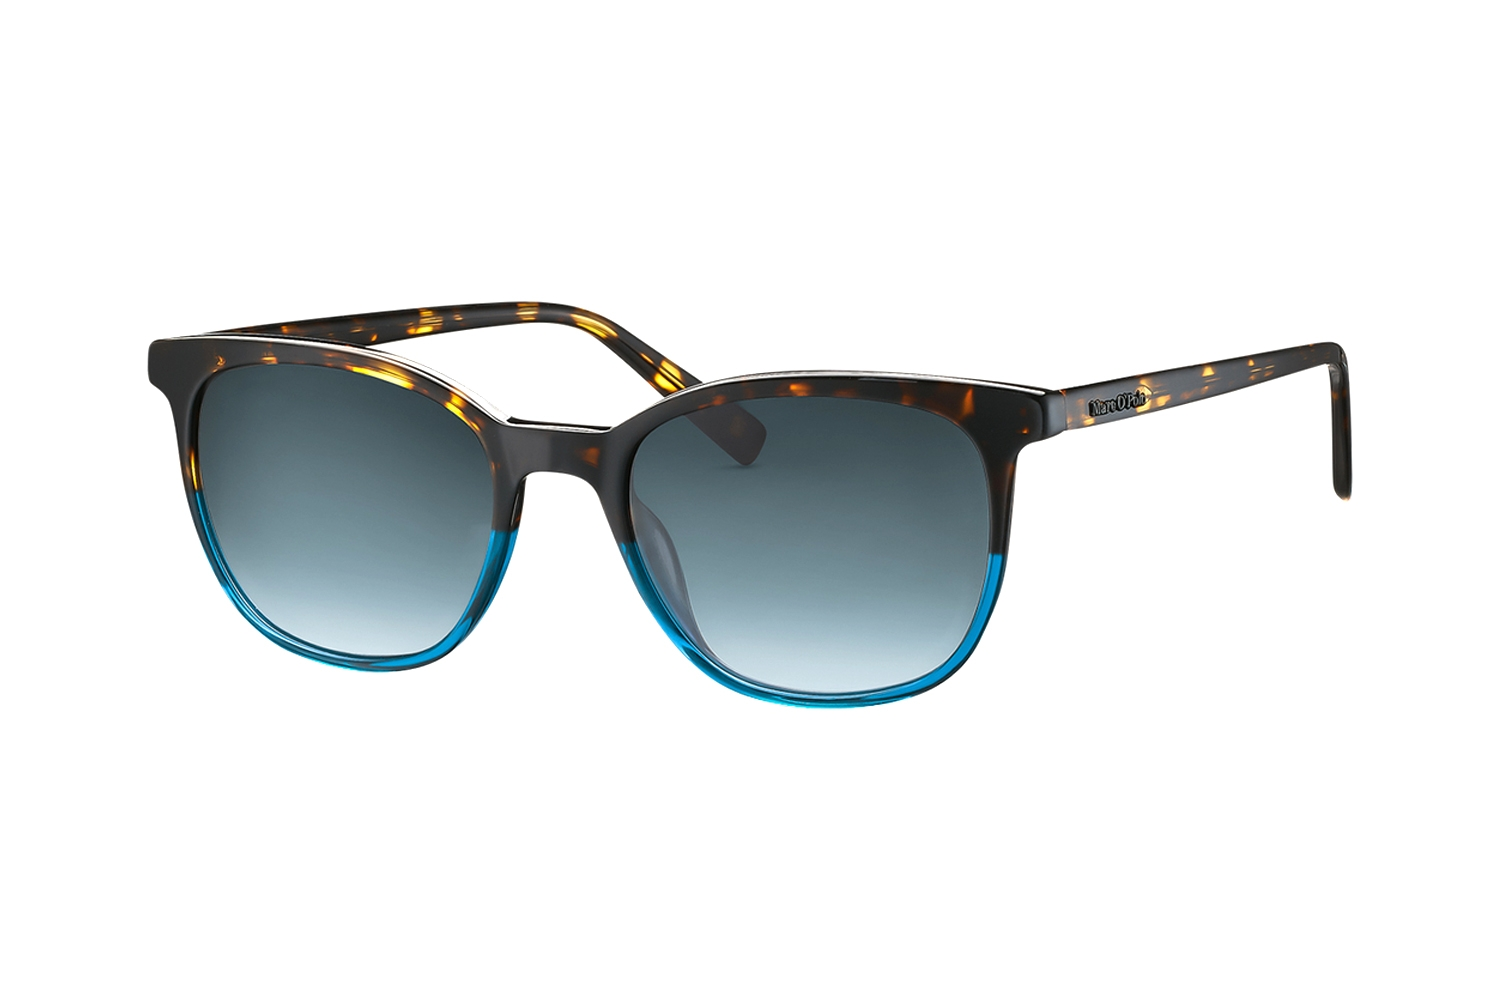 MARC O'POLO Eyewear MARC O'POLO 506115 60 dunkelhavanna WP3AkW4H